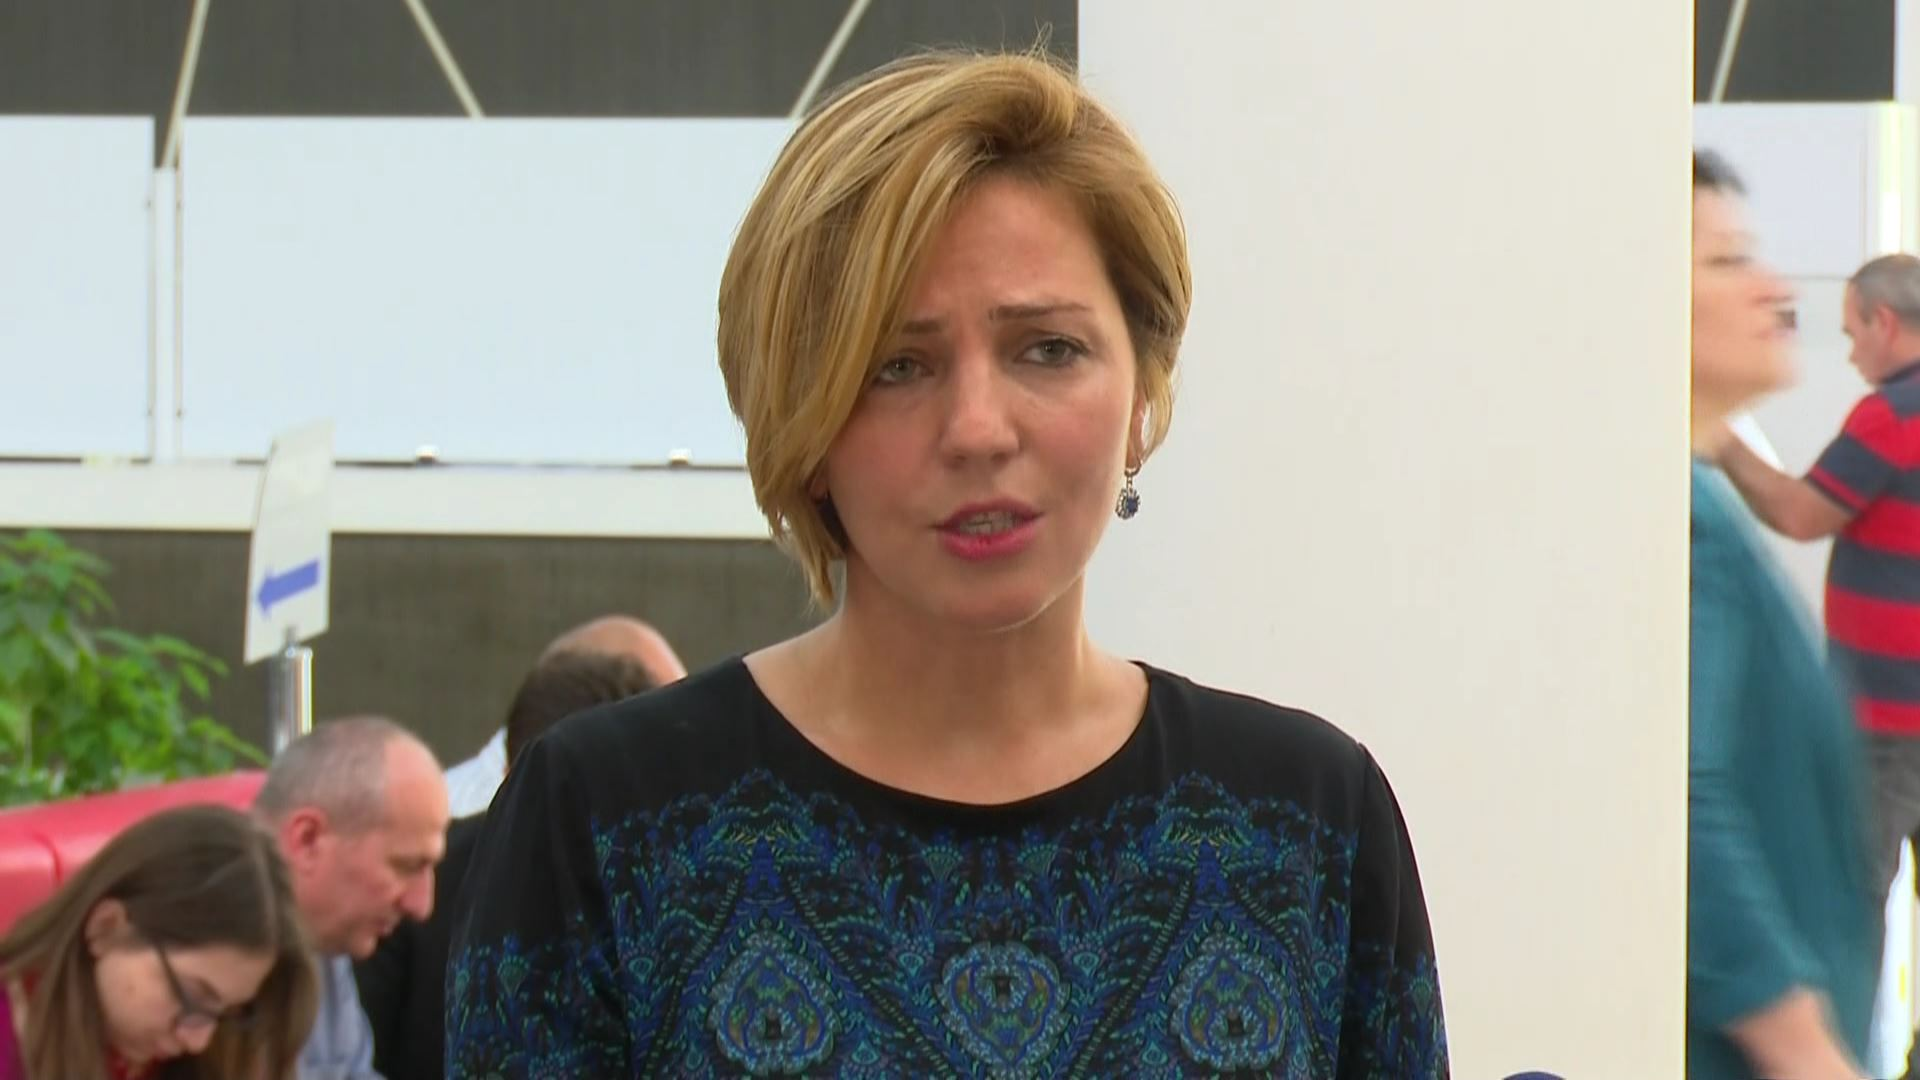 Ana Dolidze sues the chairperson of the court of appeal